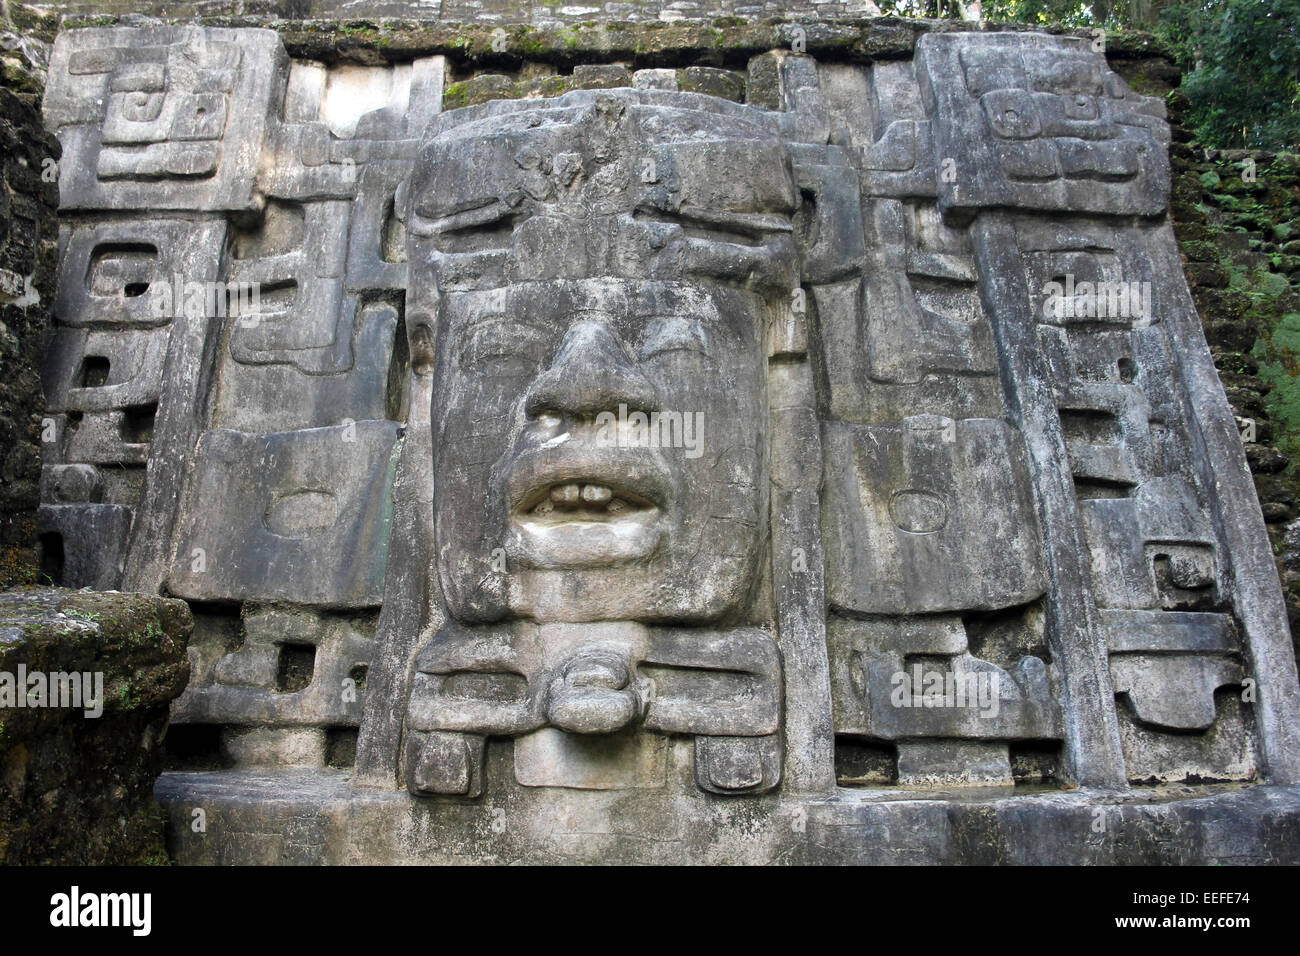 Mask Temple, Lamanai, Belize  Adorned by a 13-foot stone mask of an ancient Maya king - Stock Image